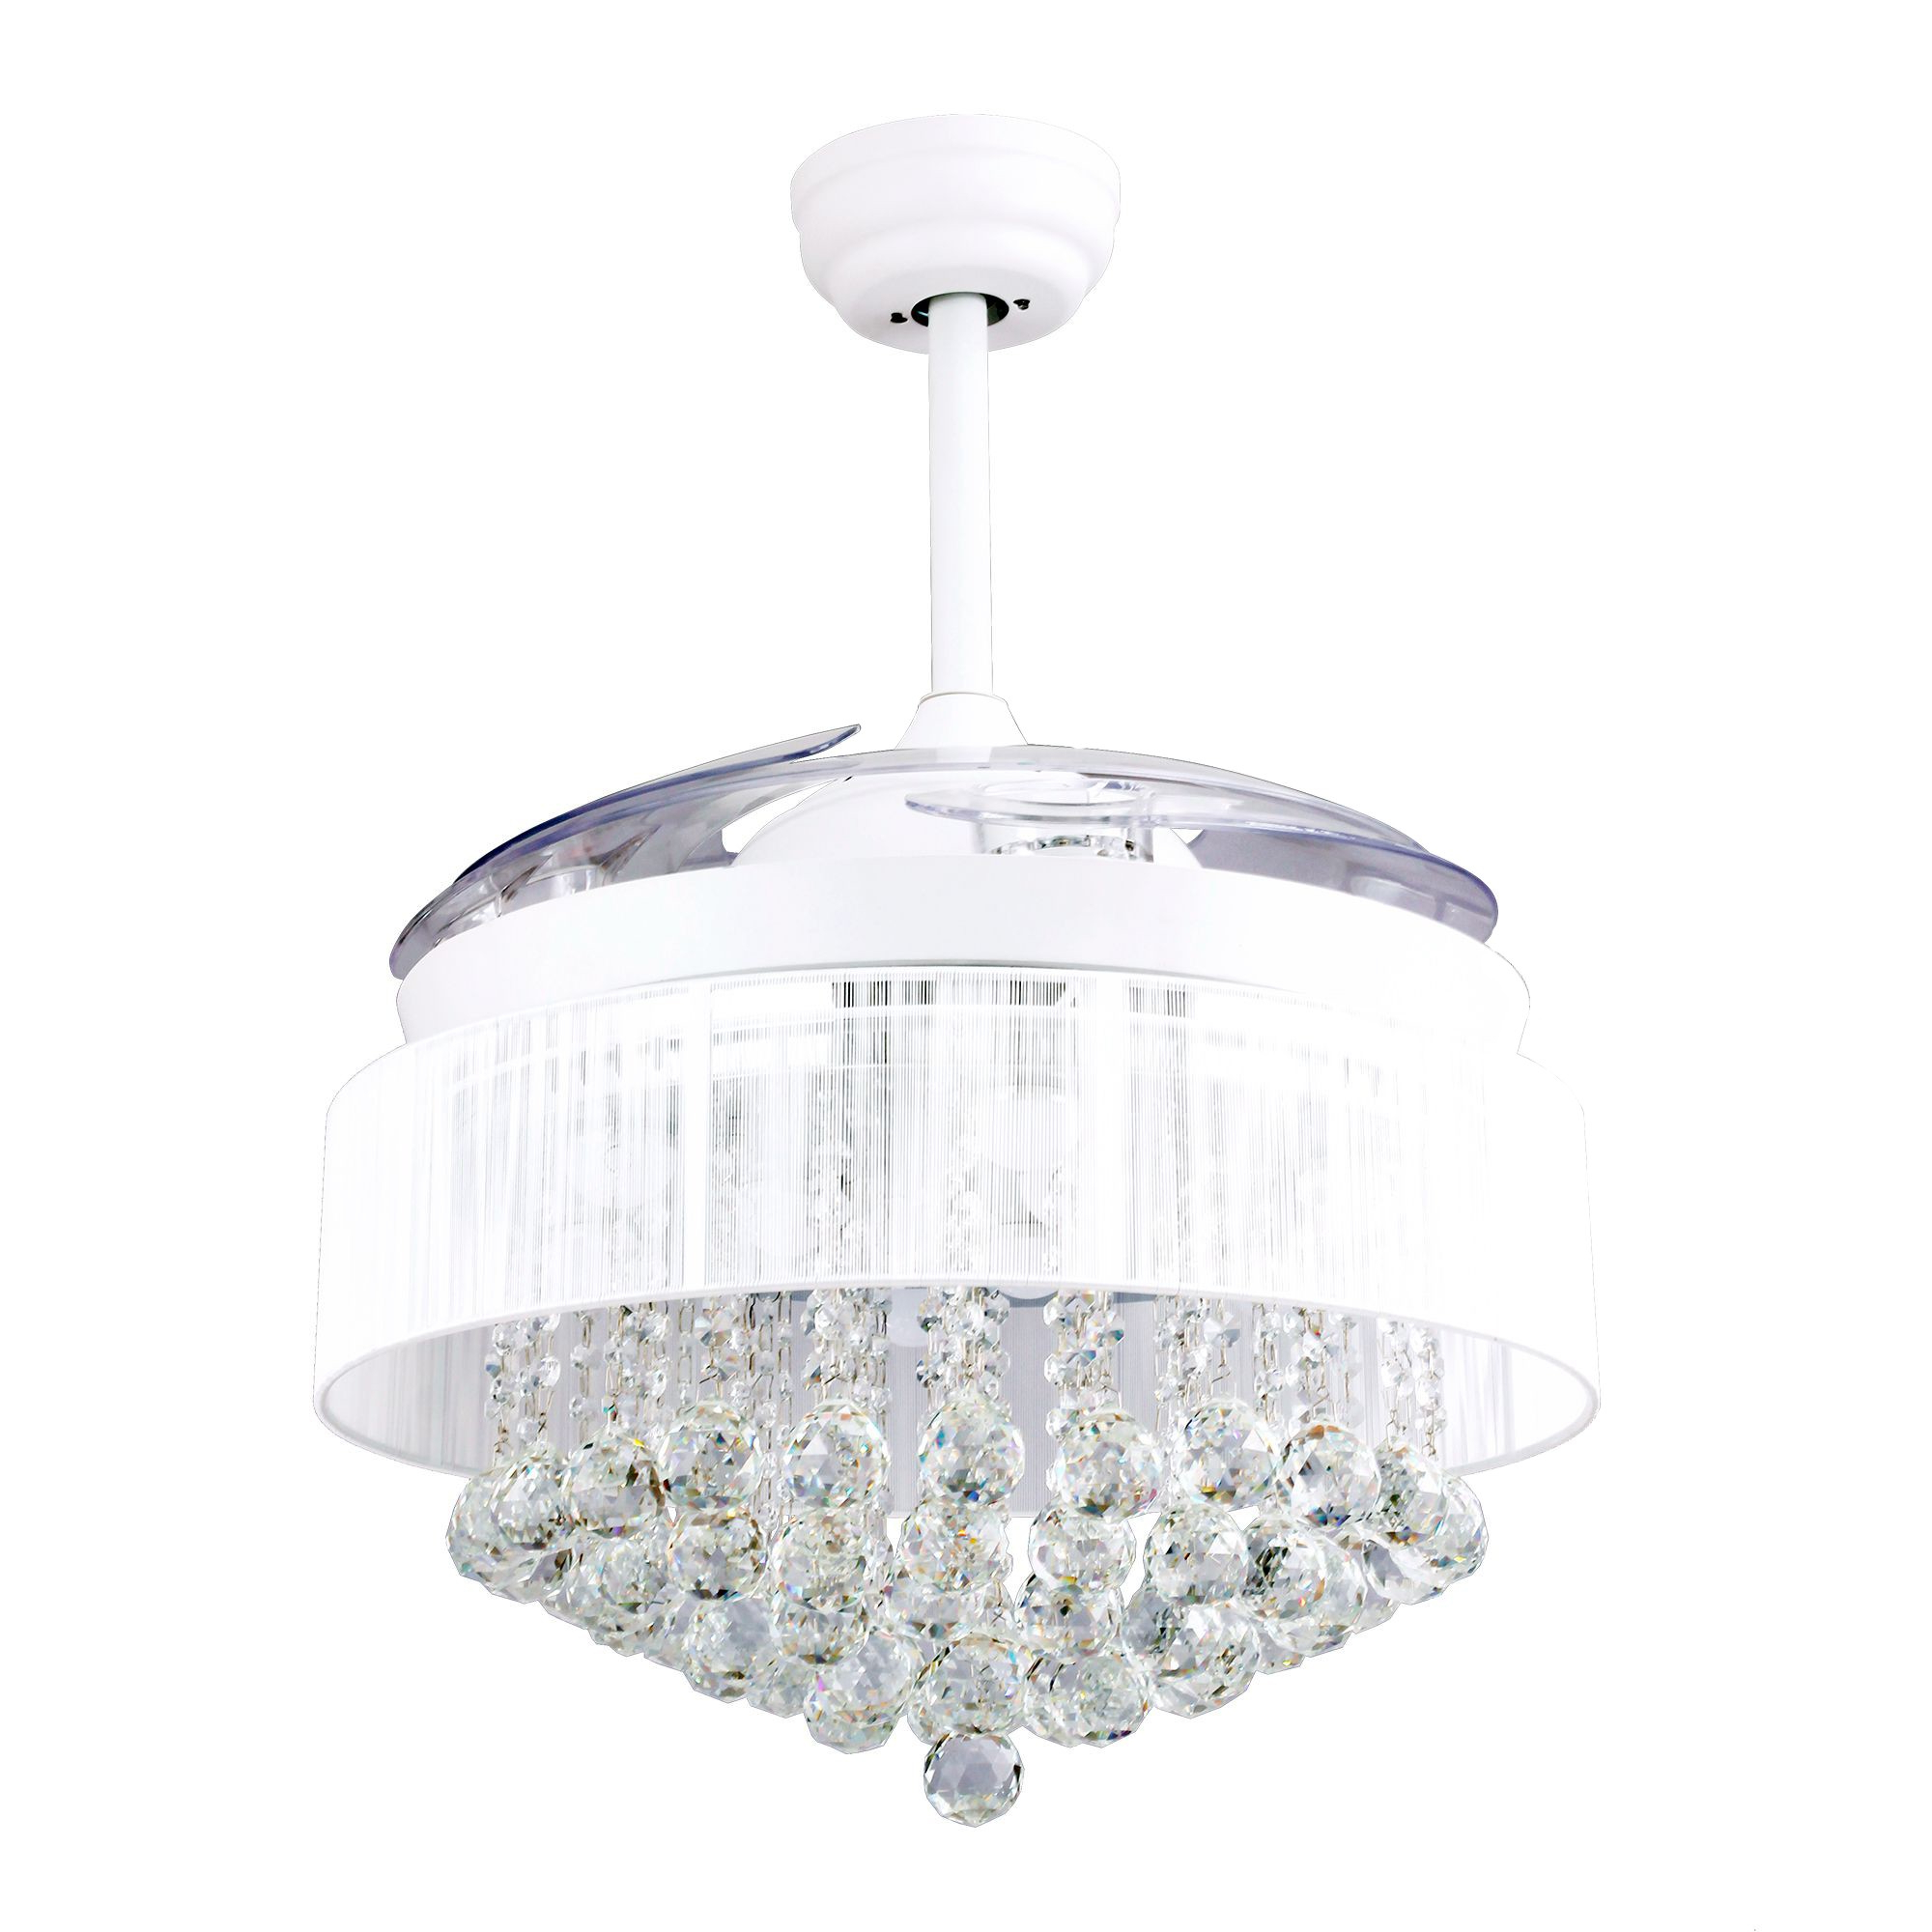 """Most Recently Released 46"""" Broxburne Modern Crystal Retractable Ceiling Fan With Led Lights And  Remote Control, White In Broxburne 4 Blade Led Ceiling Fans With Remote (View 17 of 20)"""